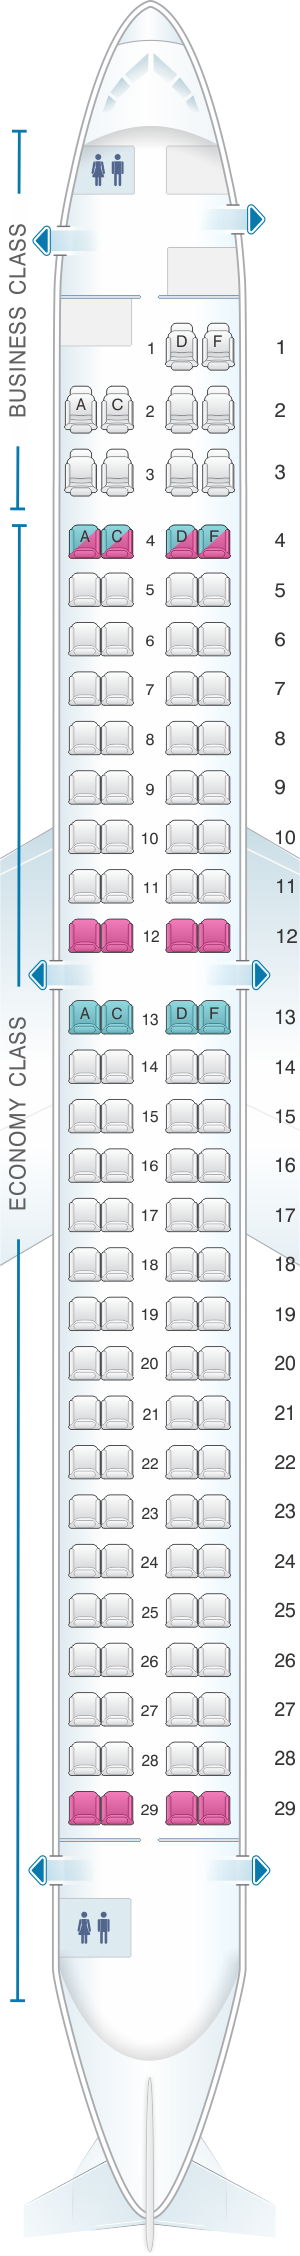 Seat map for Saravia Embraer 190